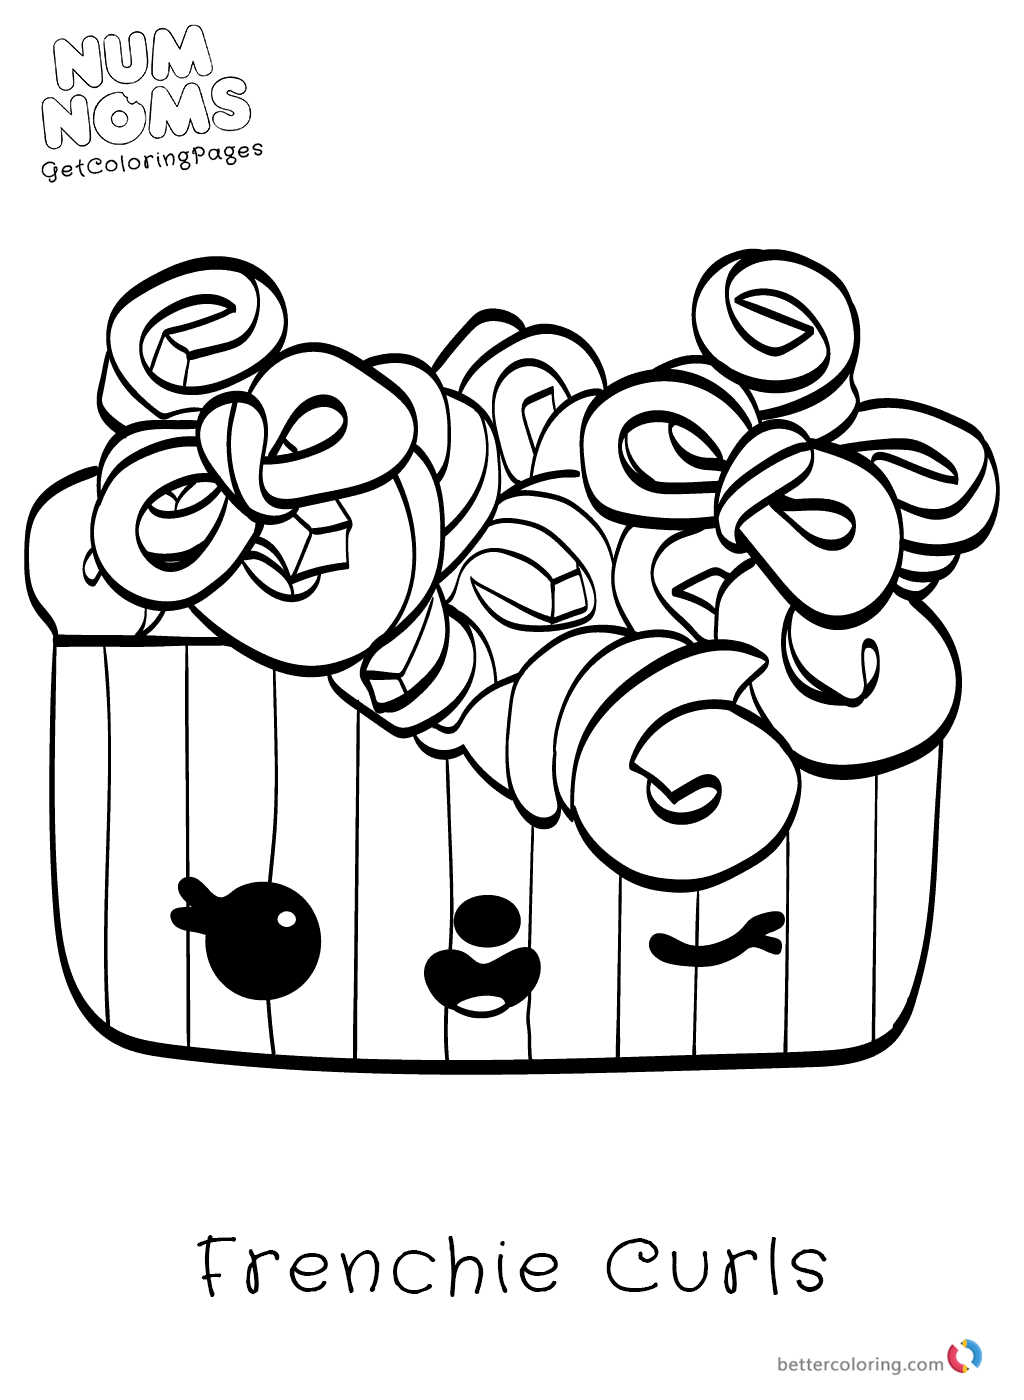 Printable Num Noms Coloring Page Free Printable Coloring Pages